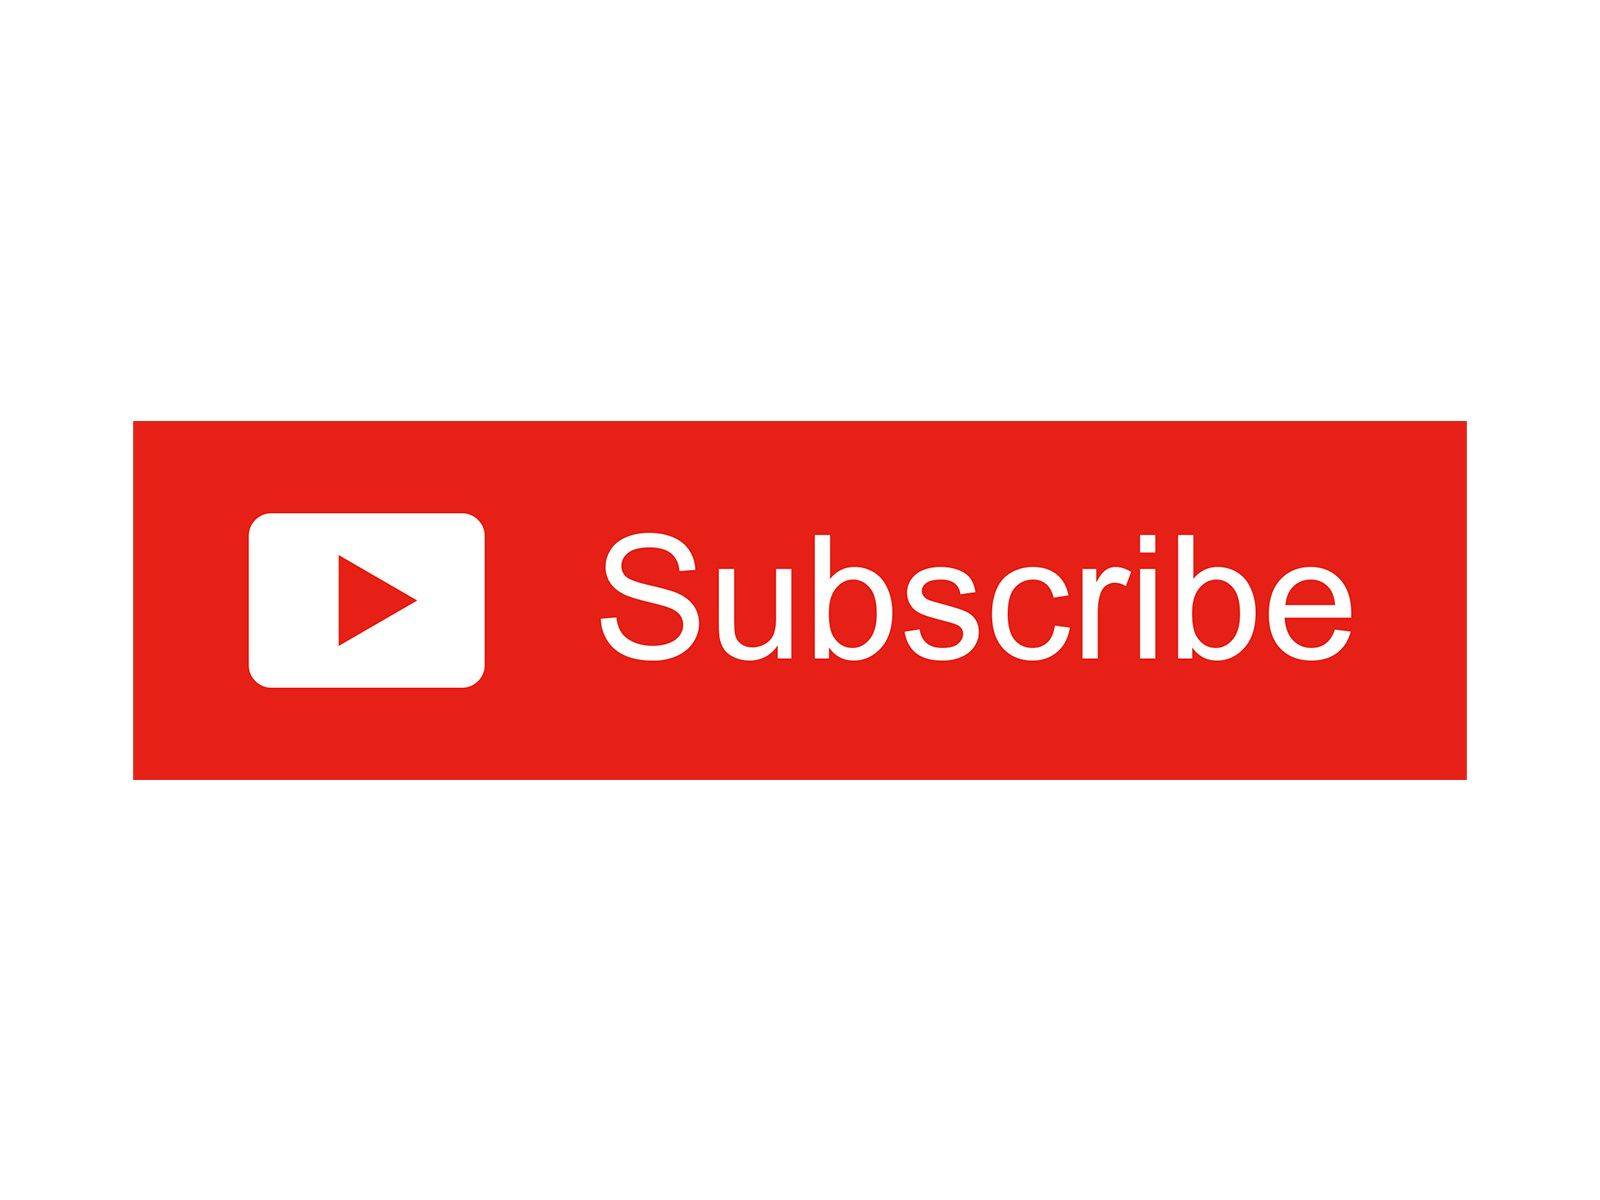 Free Youtube Subscribe Button Download 5 Youtube Logo Free Youtube First Youtube Video Ideas